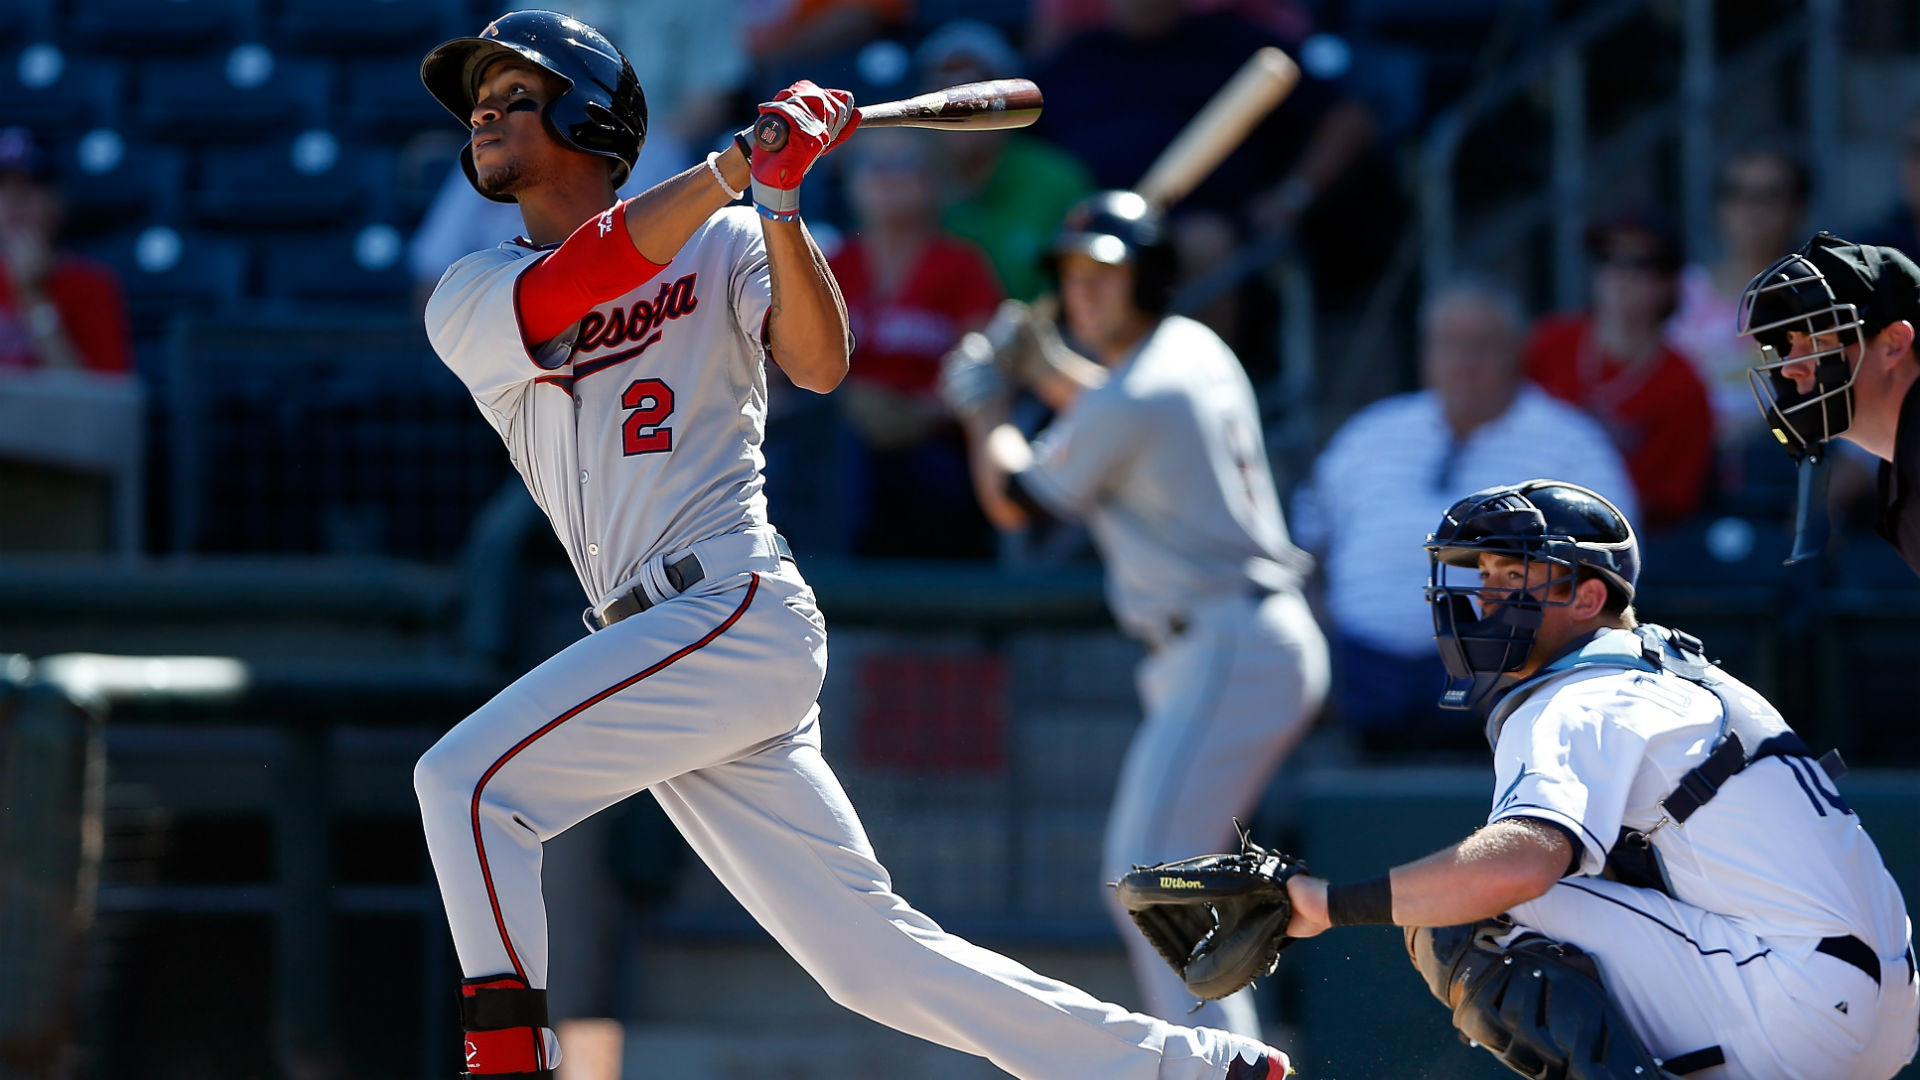 Scouting the Prospects: Not Arizona Fall League